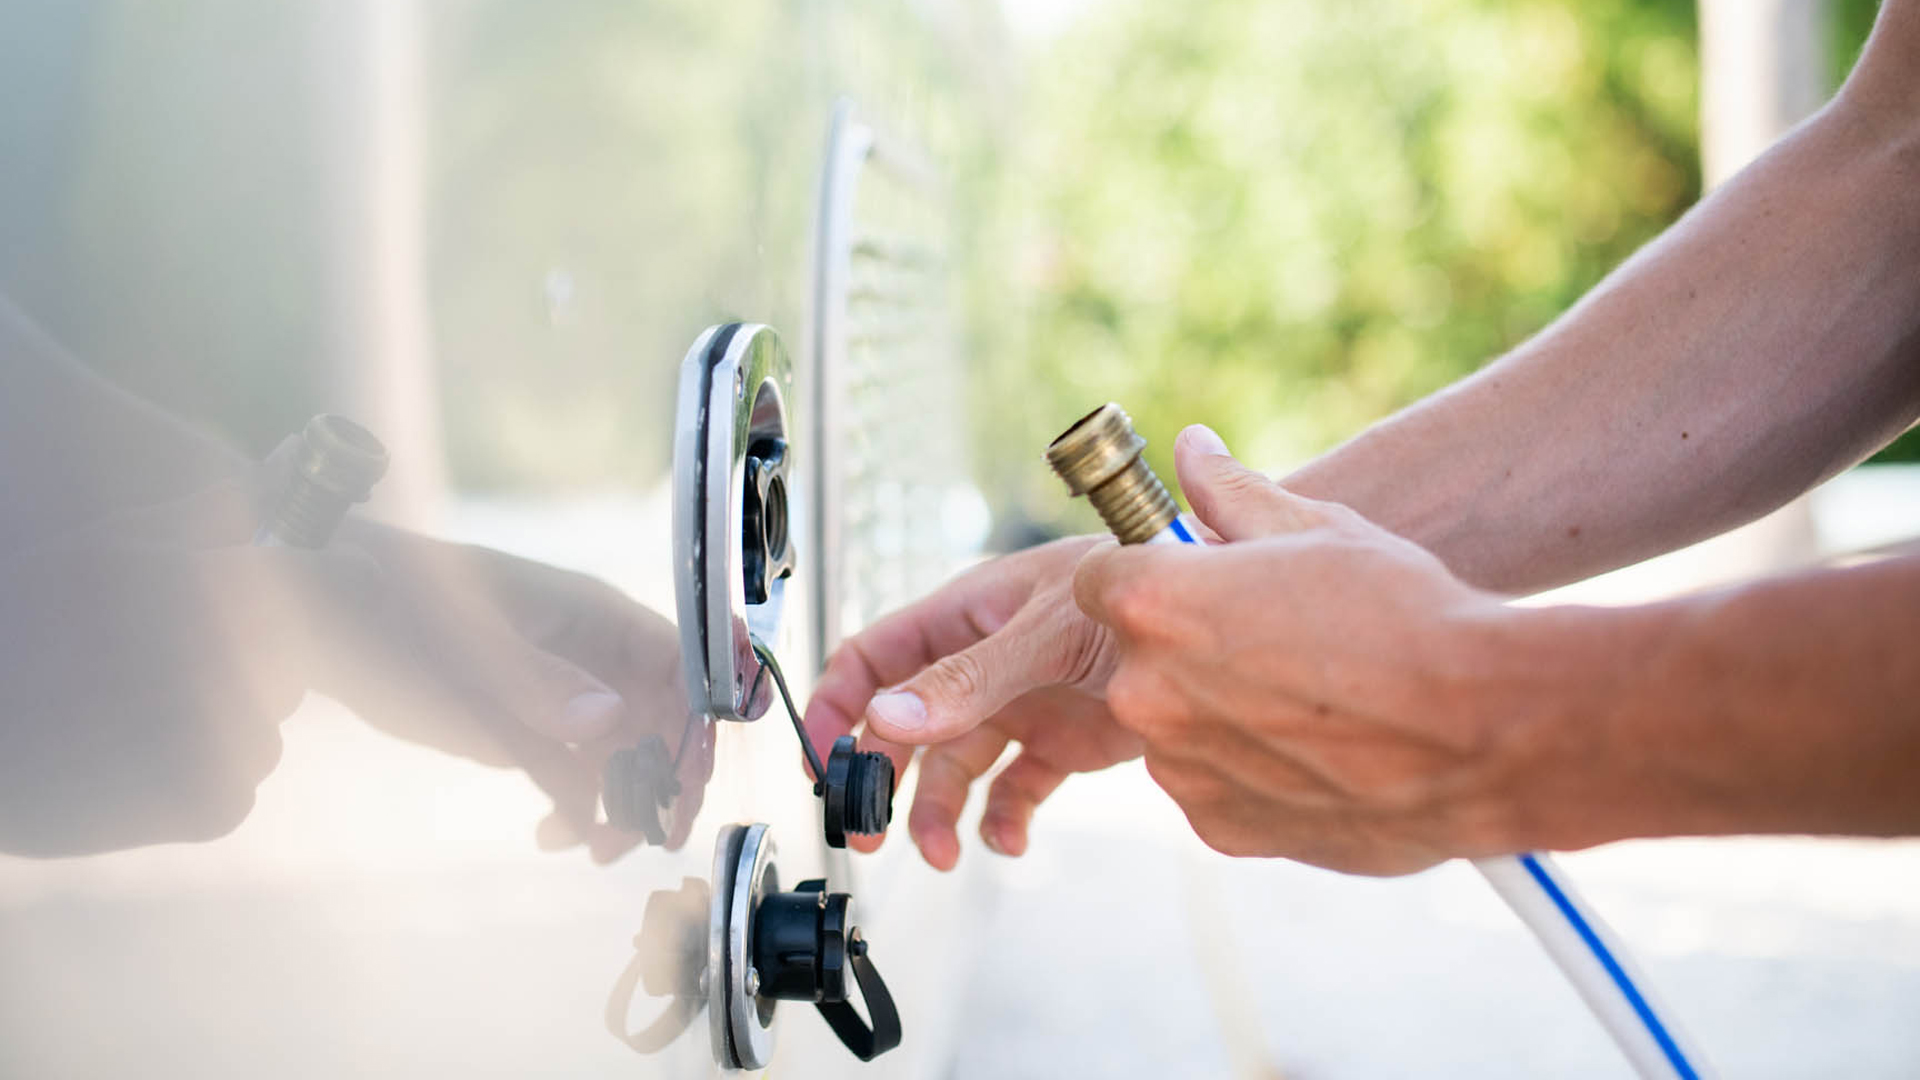 Airstream-Anatomy-of-a-Campground-water-hose